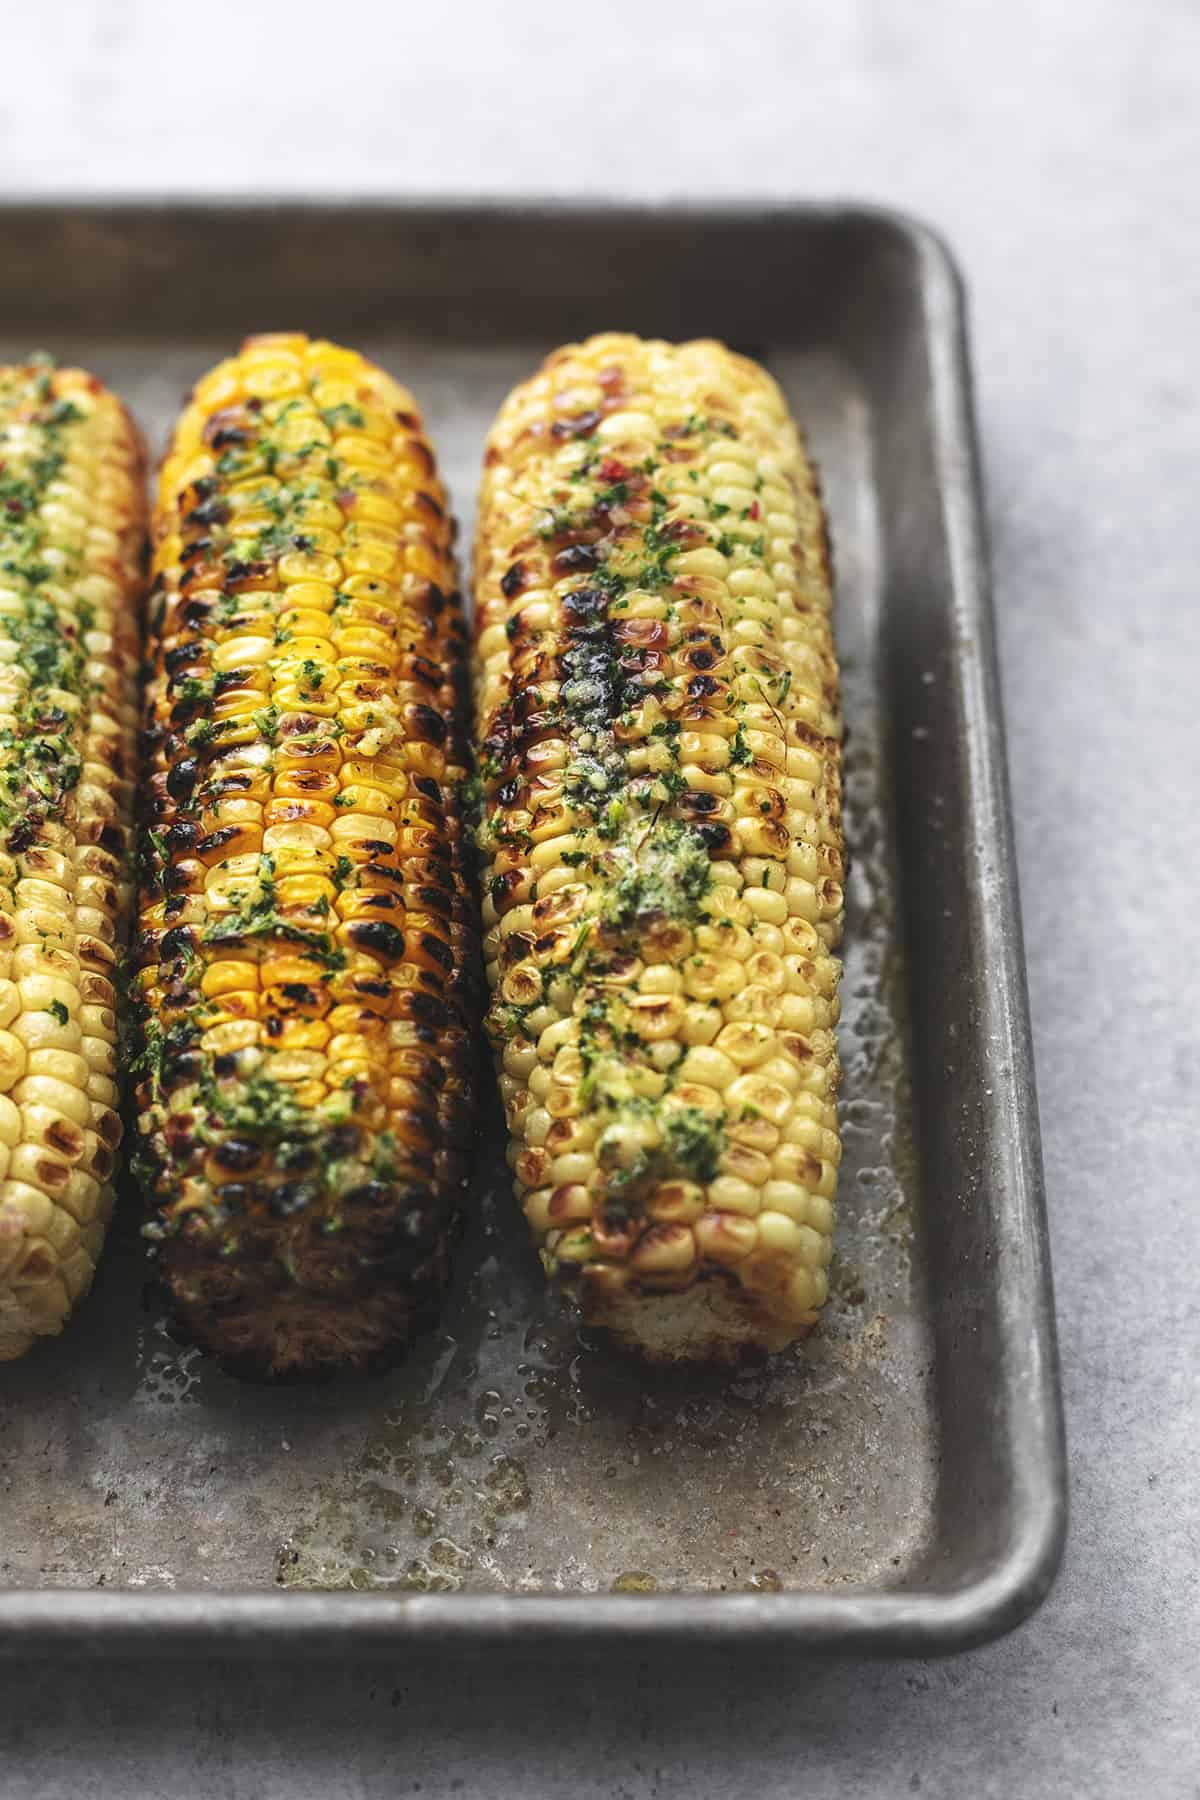 45 degree angle of grilled corn on cob with butter and herbs